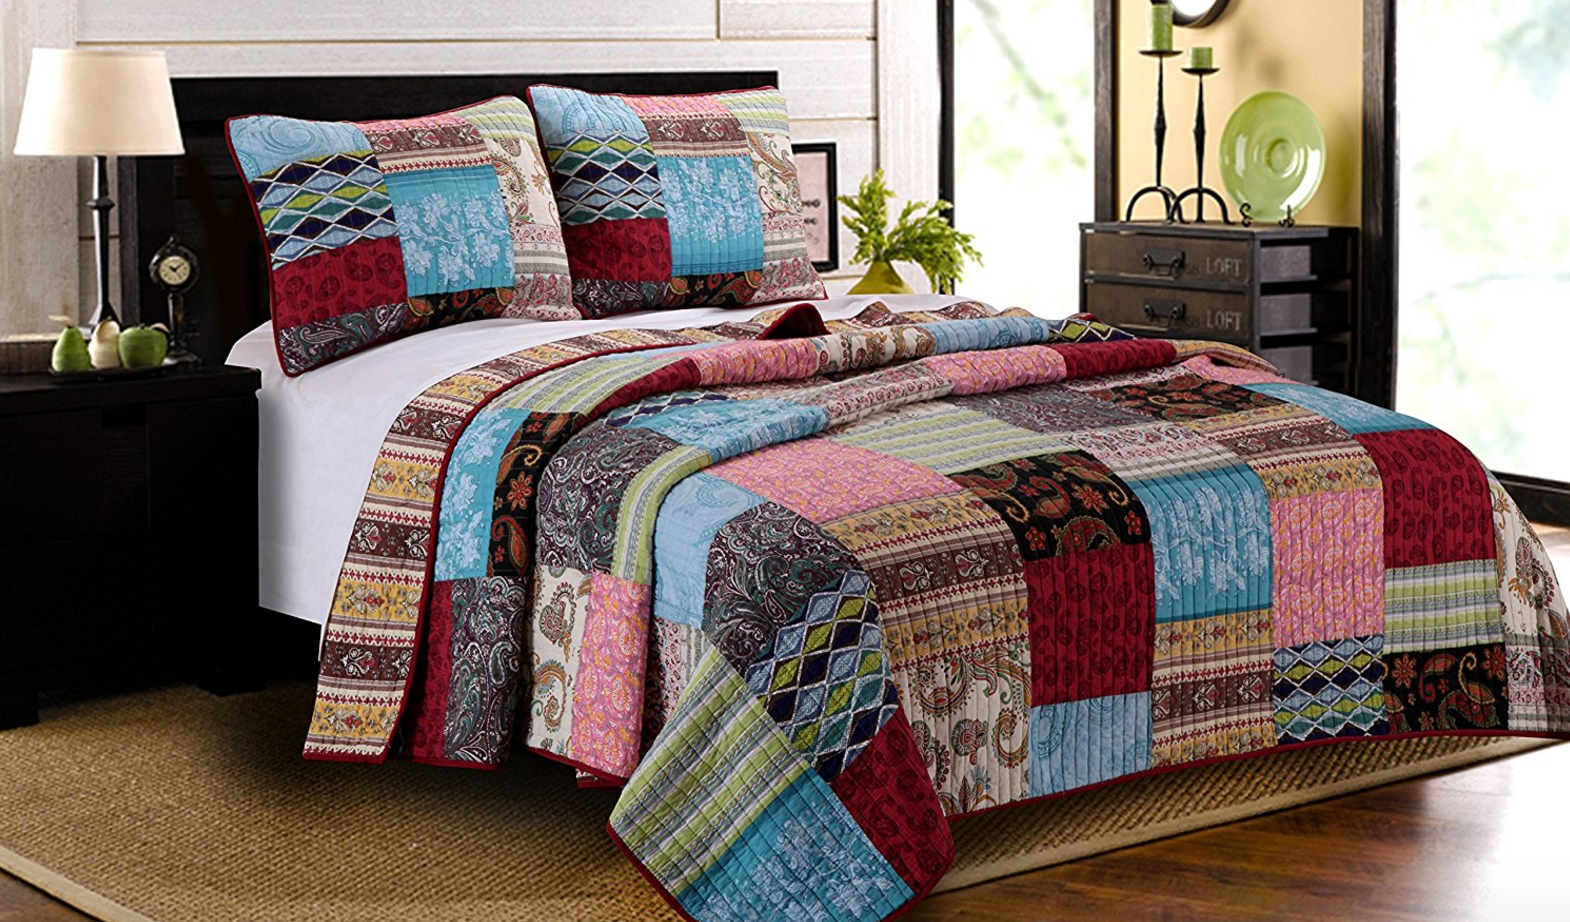 Beautiful Greenland Home 3 Piece Bohemian Dream Quilt Set, King -- $40.00 (reg. $55.08), BEST Price!